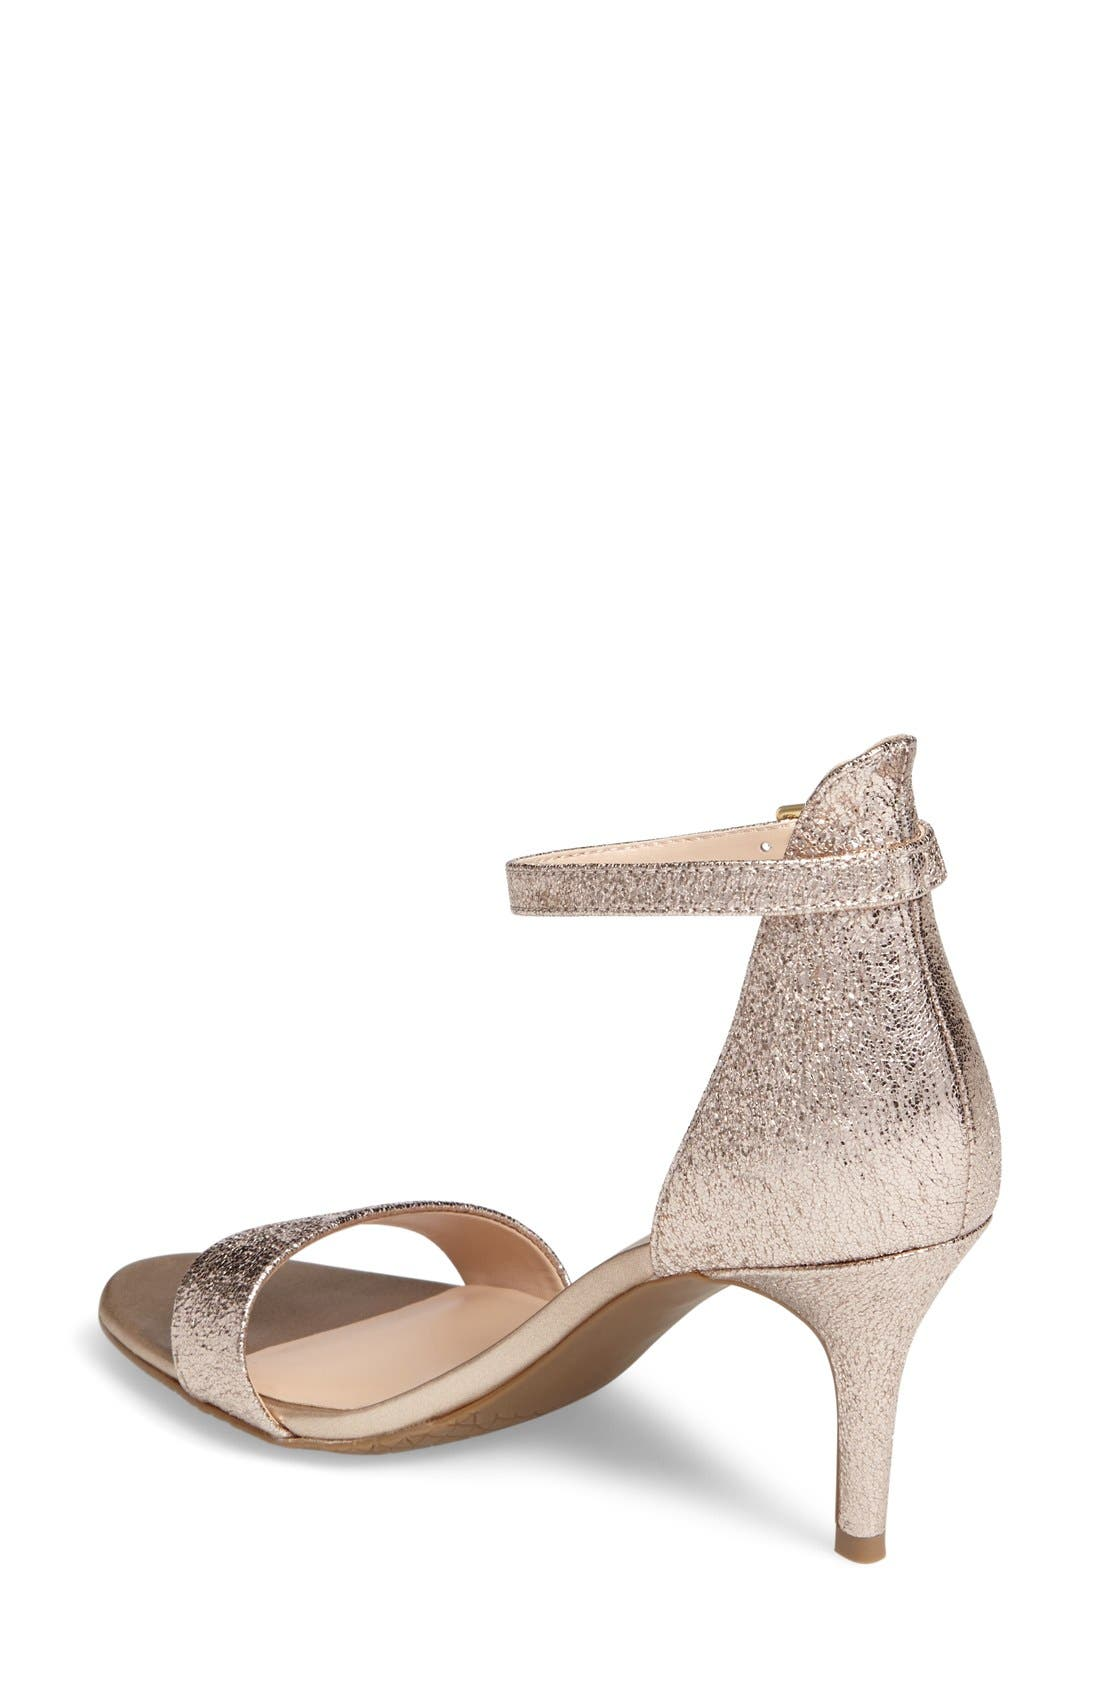 'Luminate' Open Toe Dress Sandal,                             Alternate thumbnail 91, color,